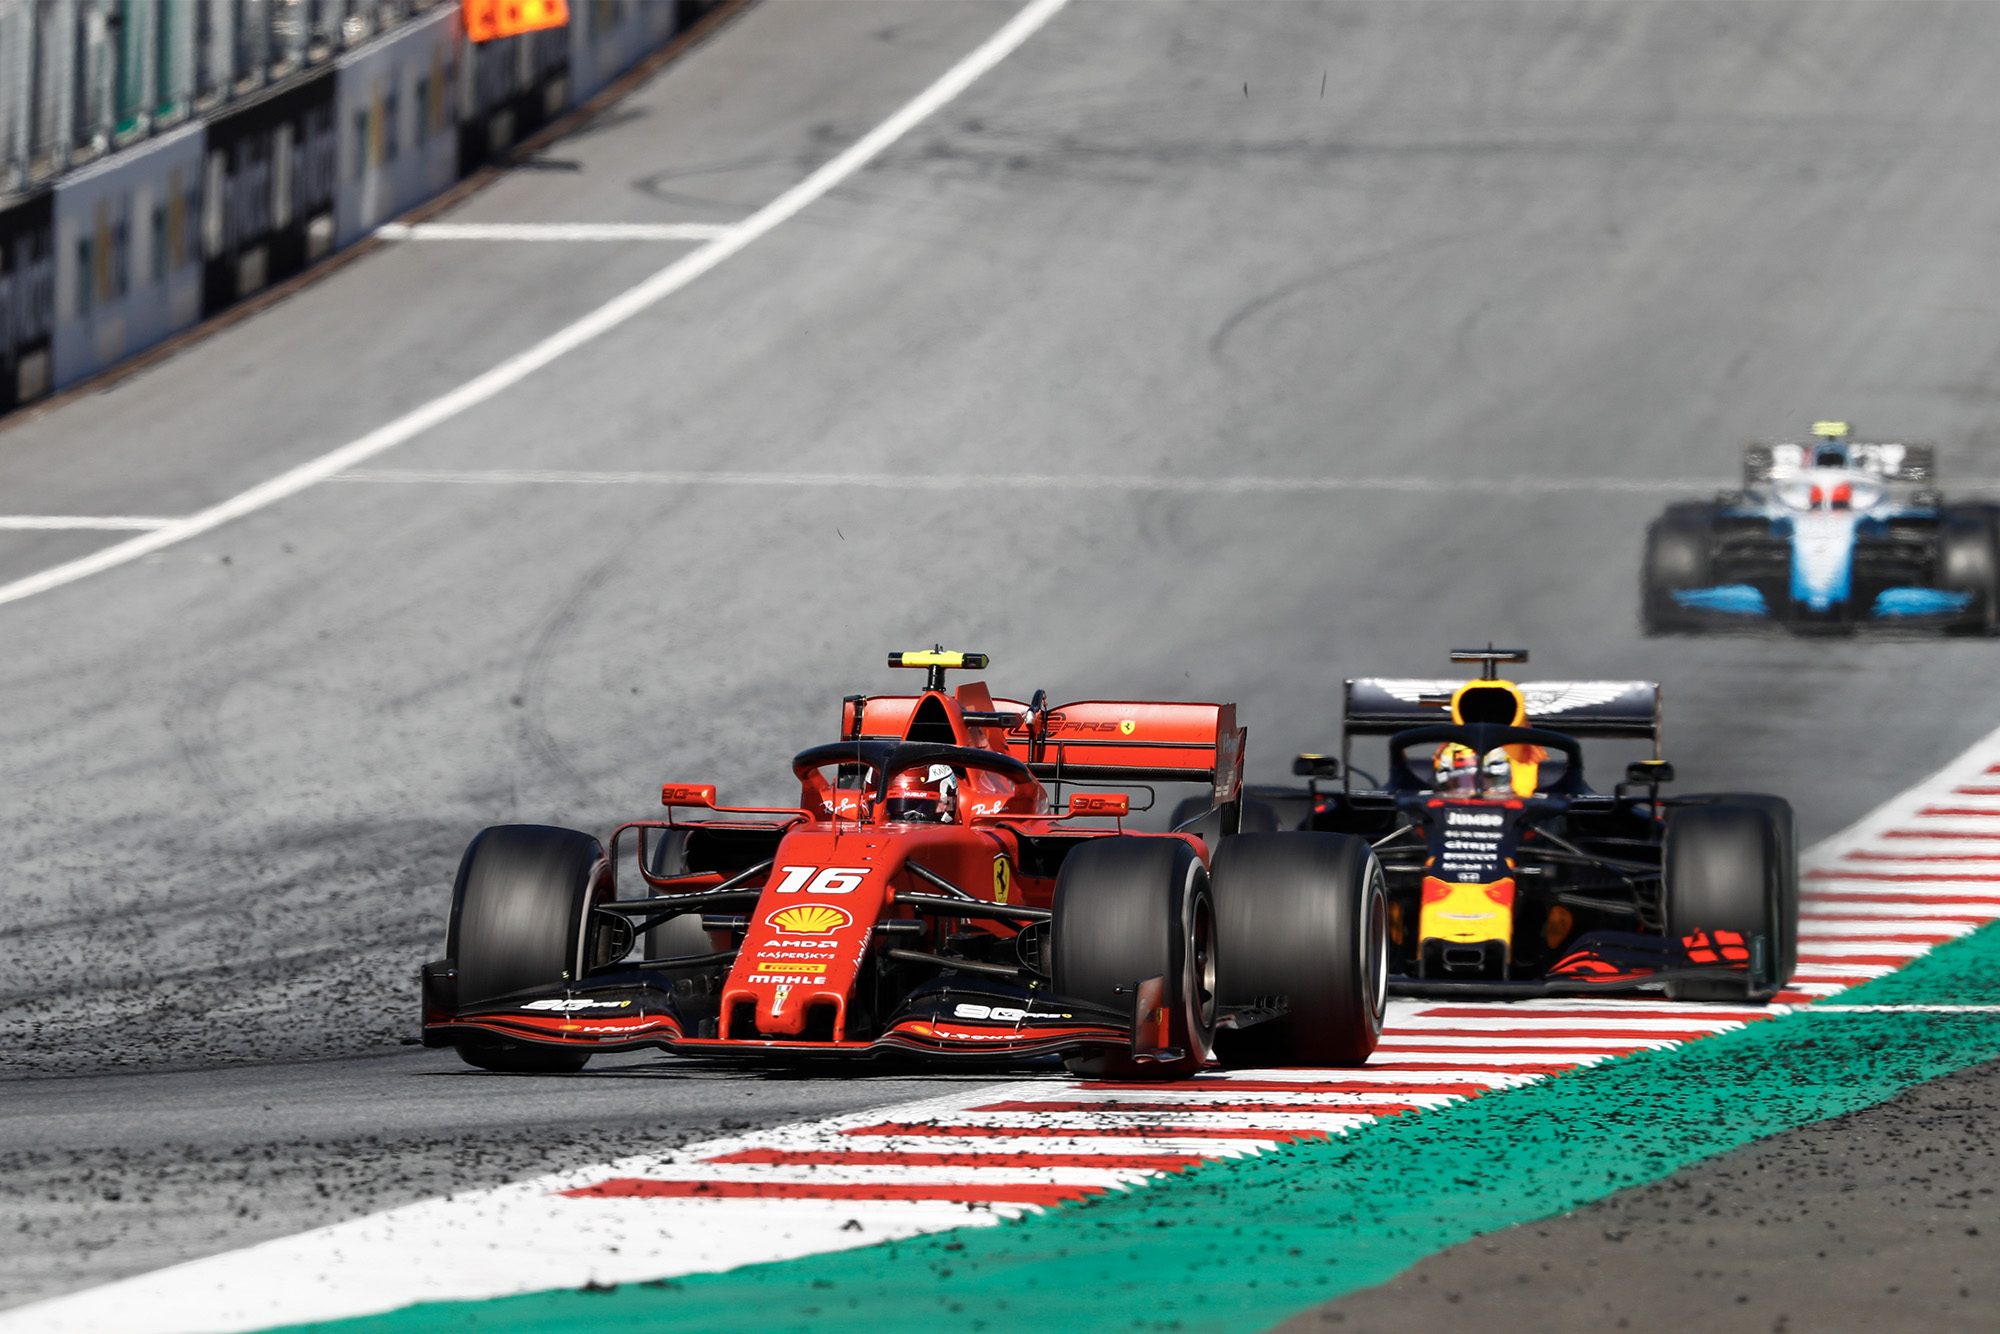 Max Verstappen lines up a move on Charles Leclerc during the 2019 Austrian Grand Prix